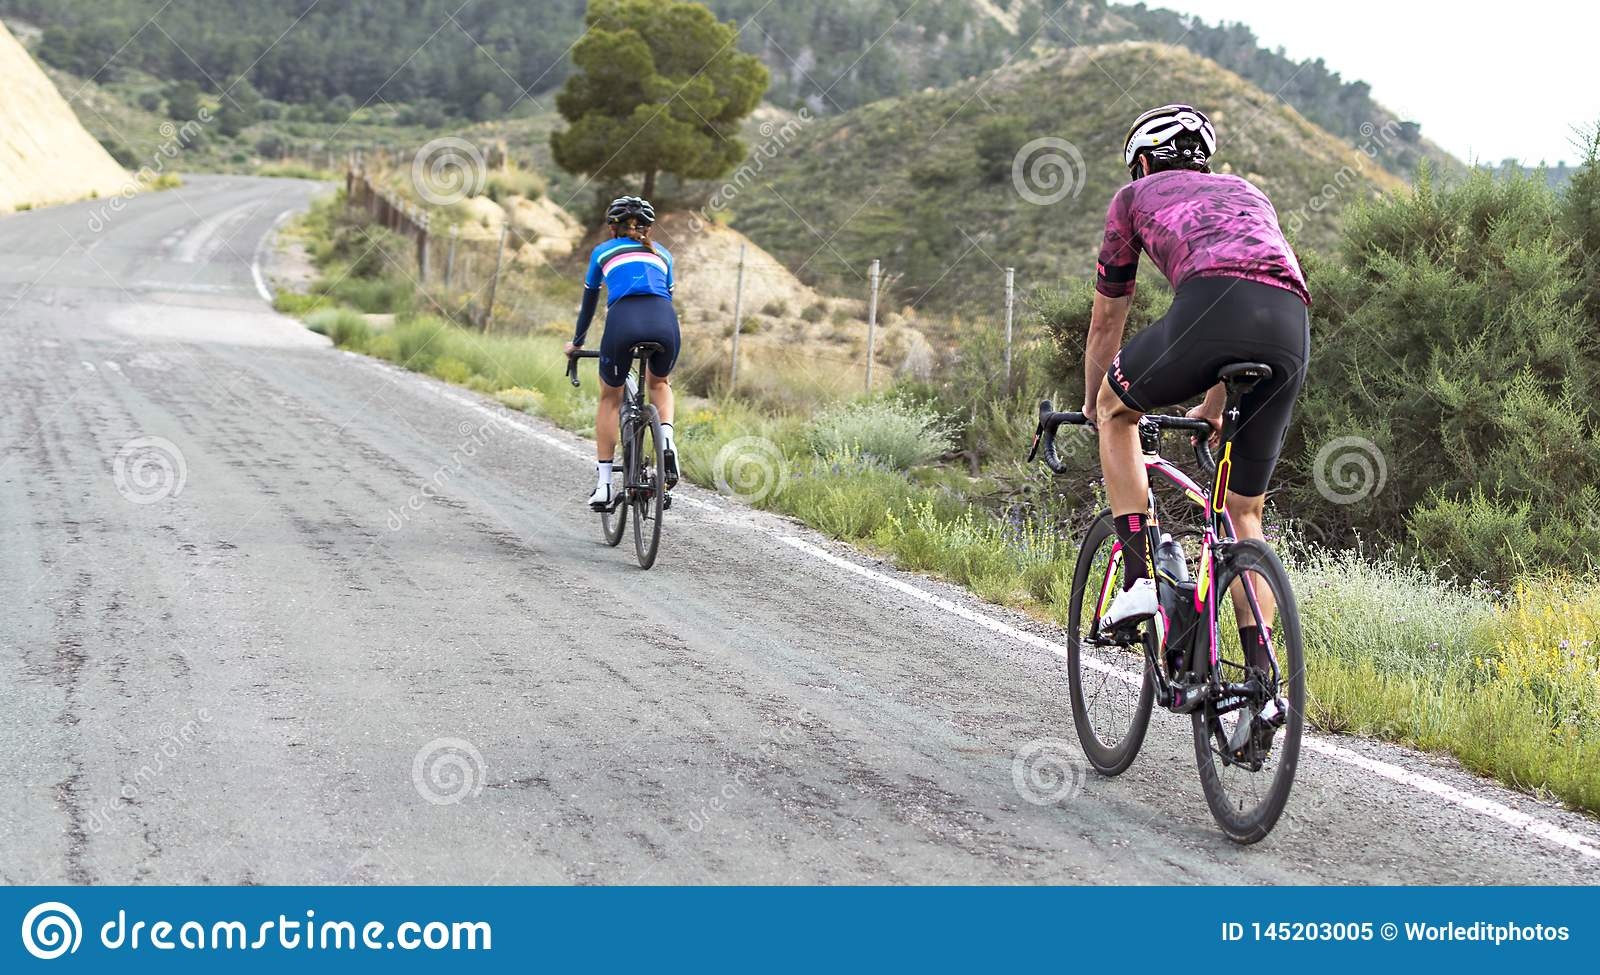 Murcia, Spain, April 17, 2019: Healthy lifestyle - teenage girl and boy cycling